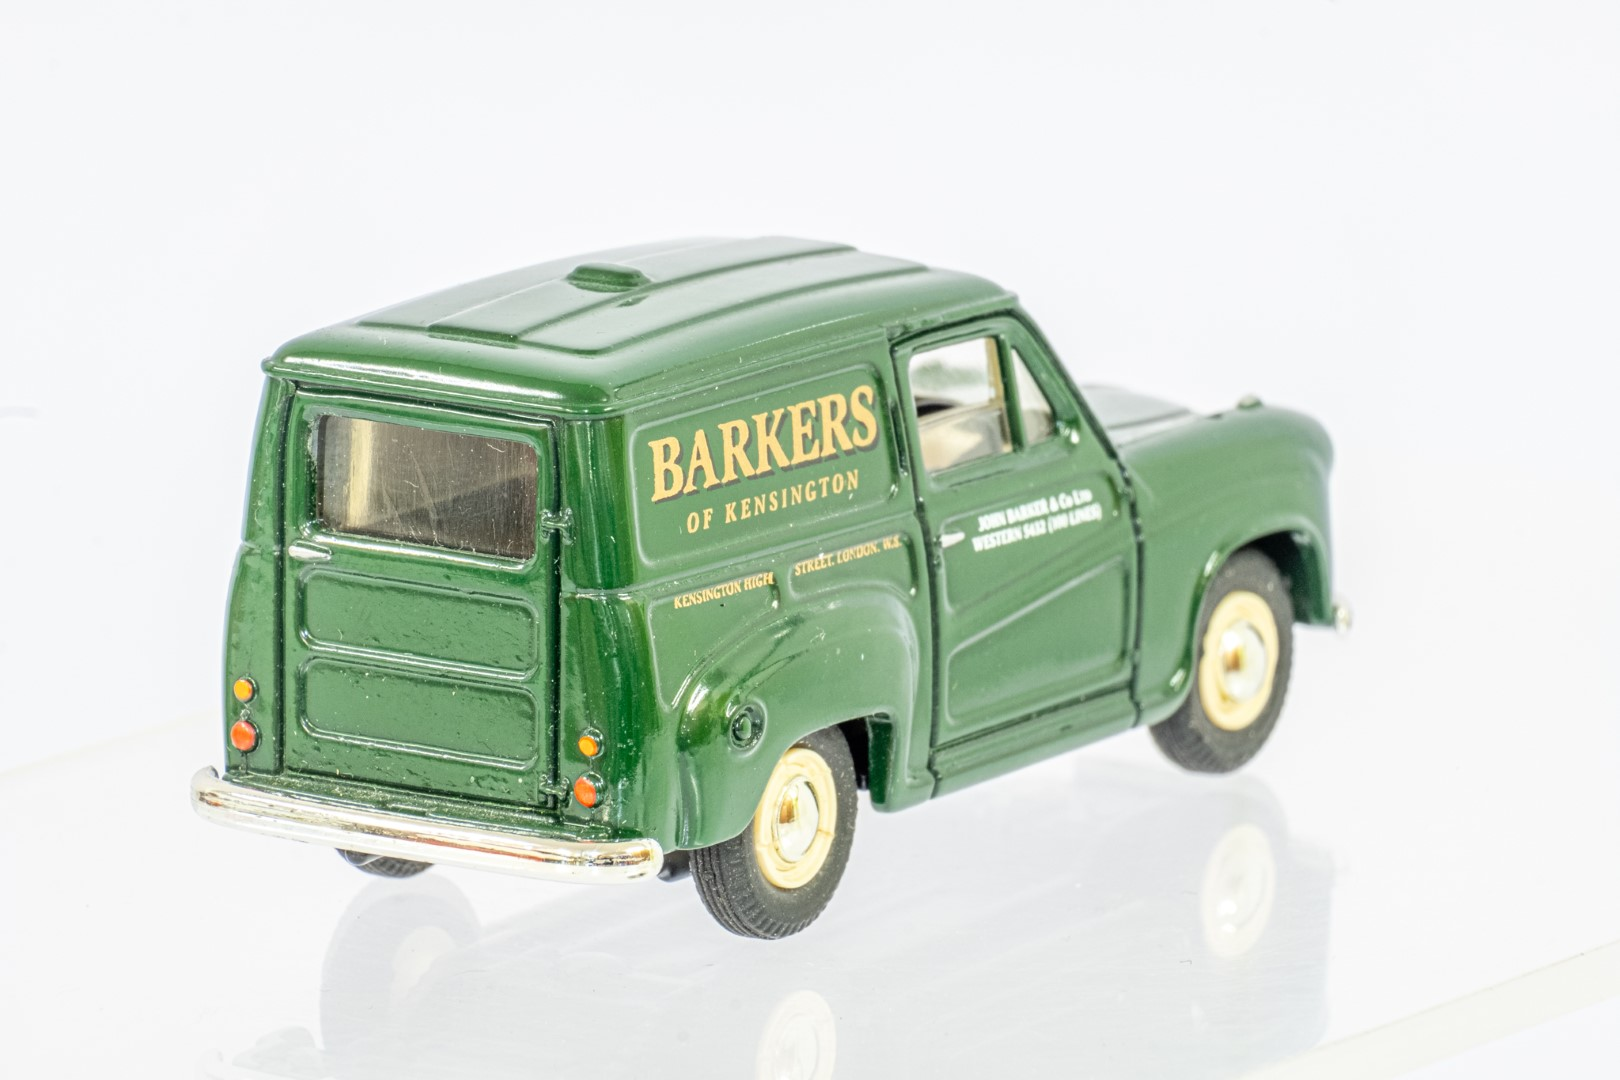 4 x Assorted Loose Car Models - Image 7 of 9